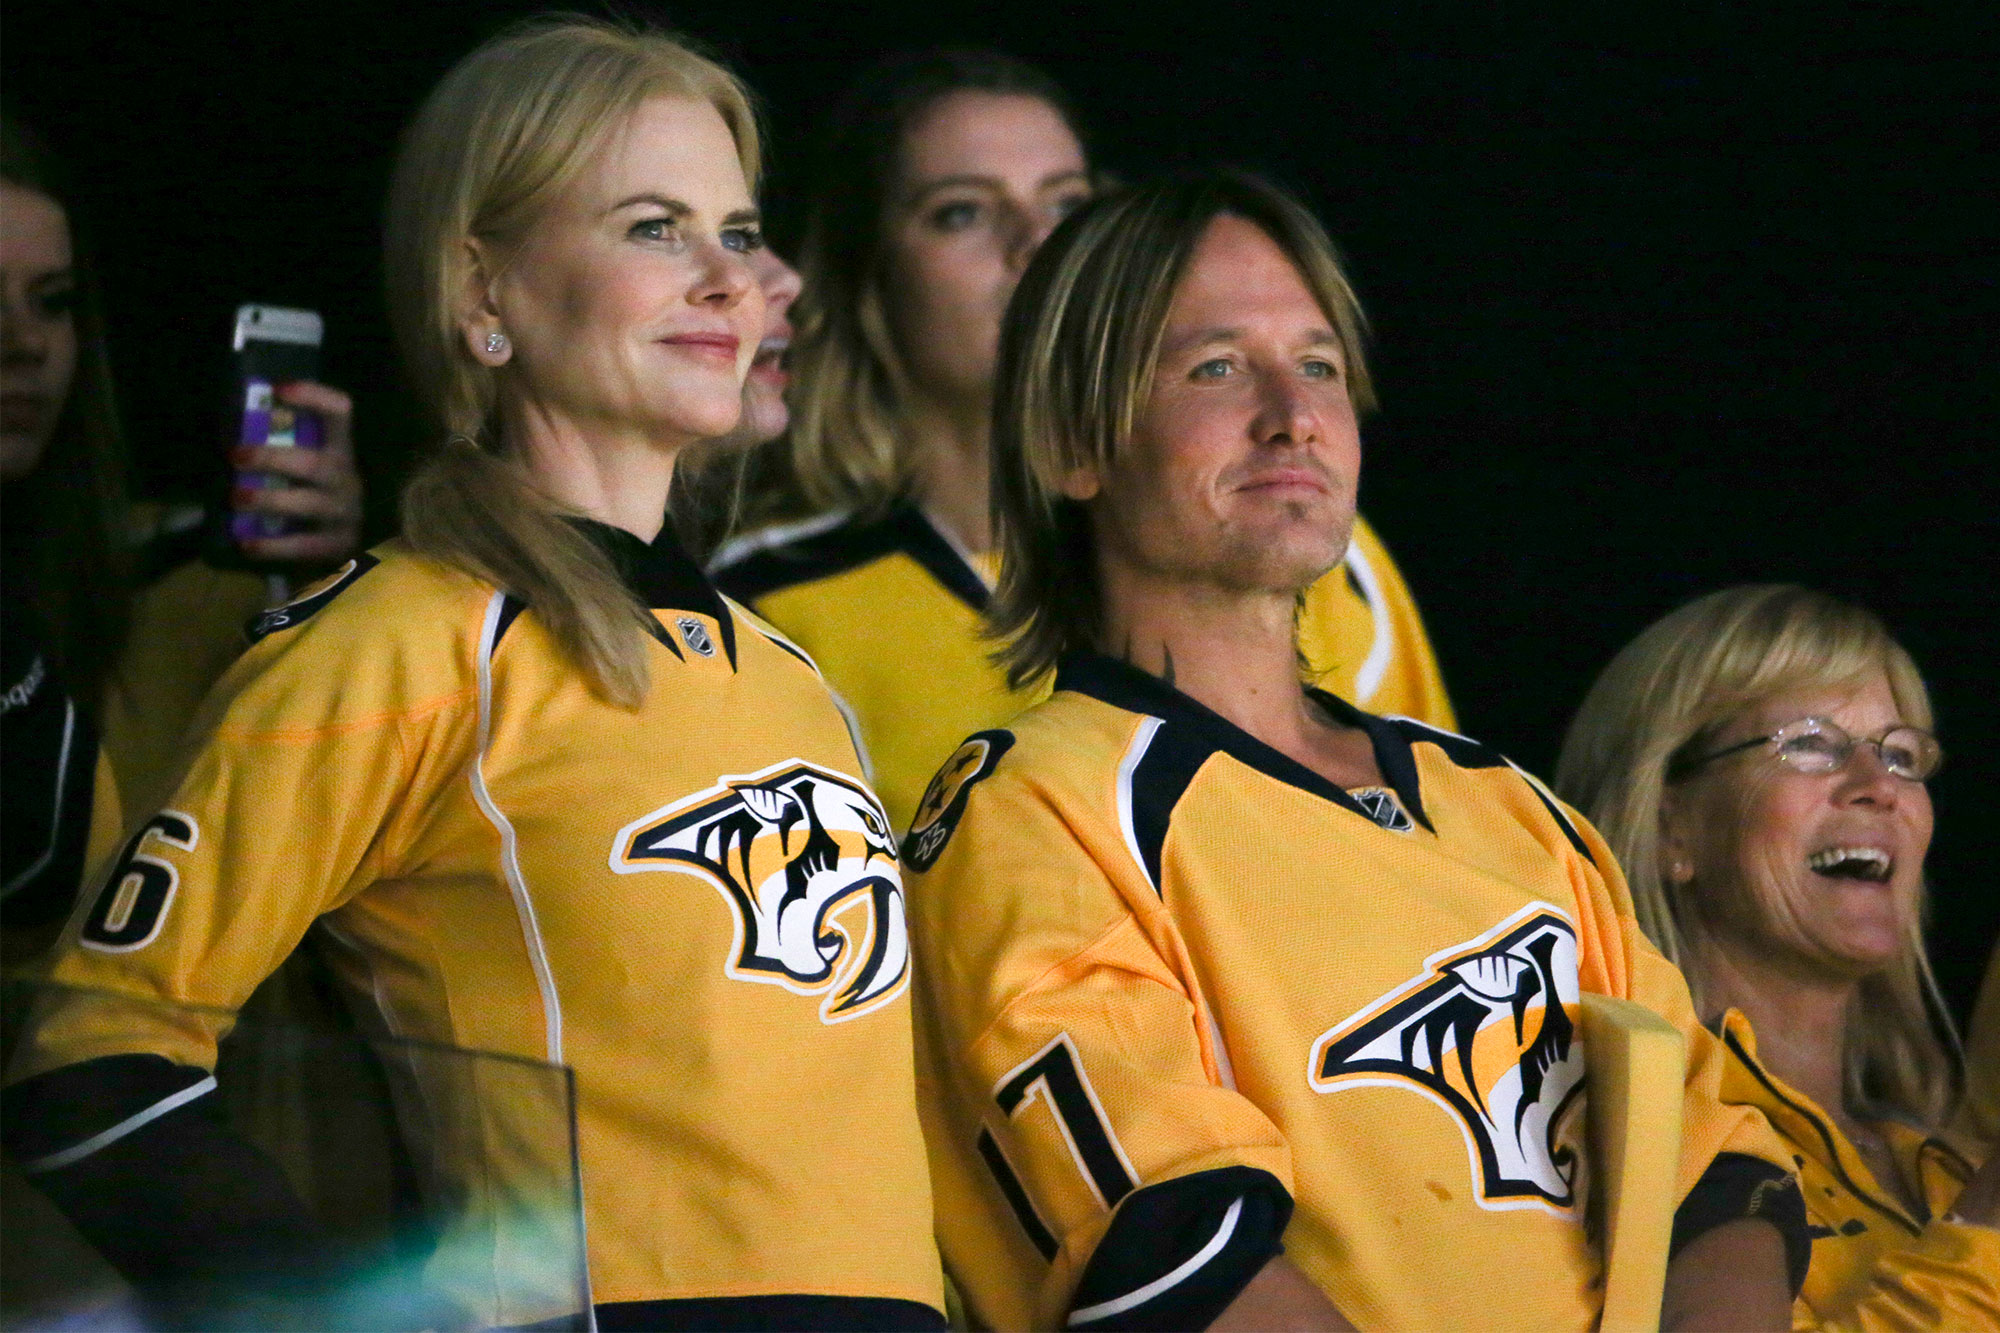 Nicole Kidman and Keith Urban Adorably Celebrate a Nashville Predators Goal at Stanley Cup Game